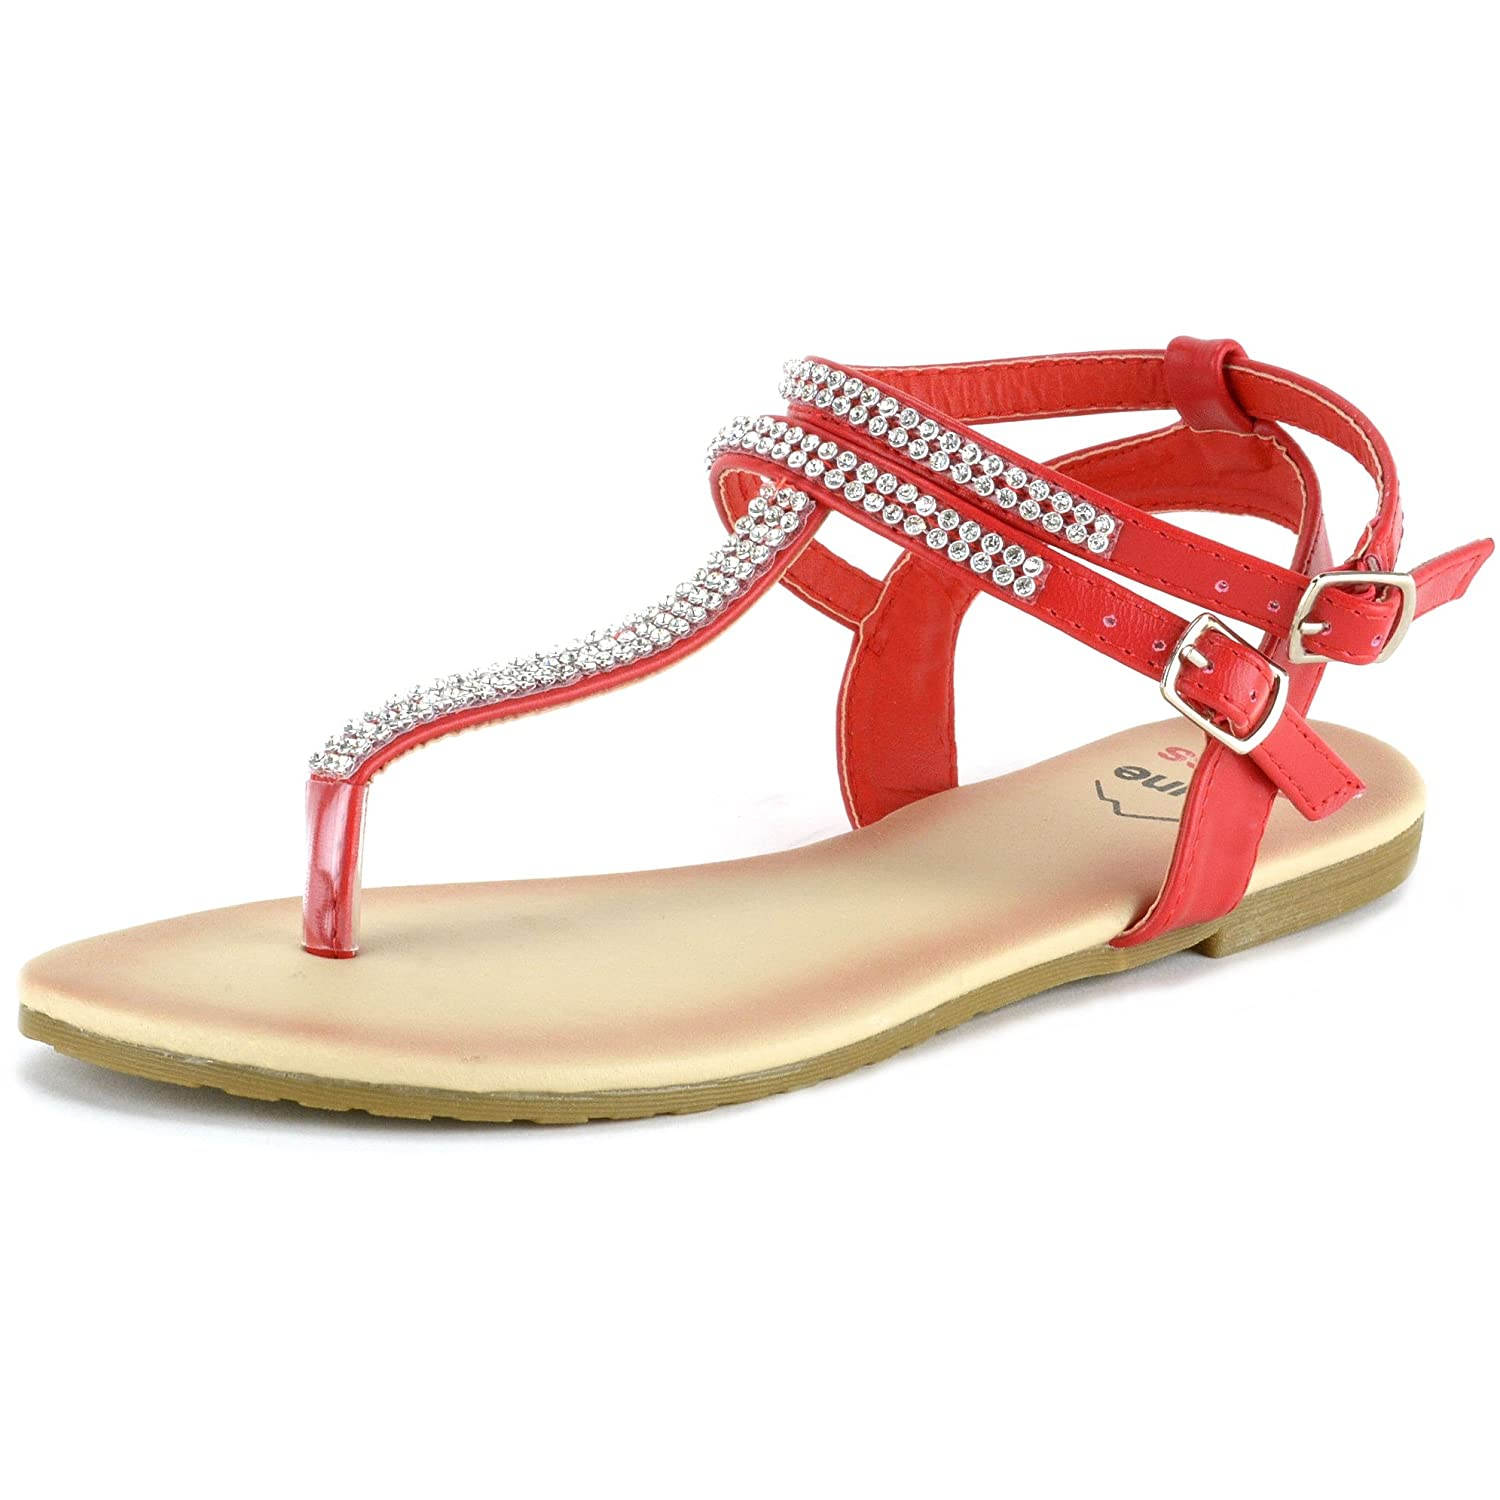 alpine swiss Womens Slingback T-Strap Rhinestone Ankle Strap Thong Sandals By Alpine Swiss